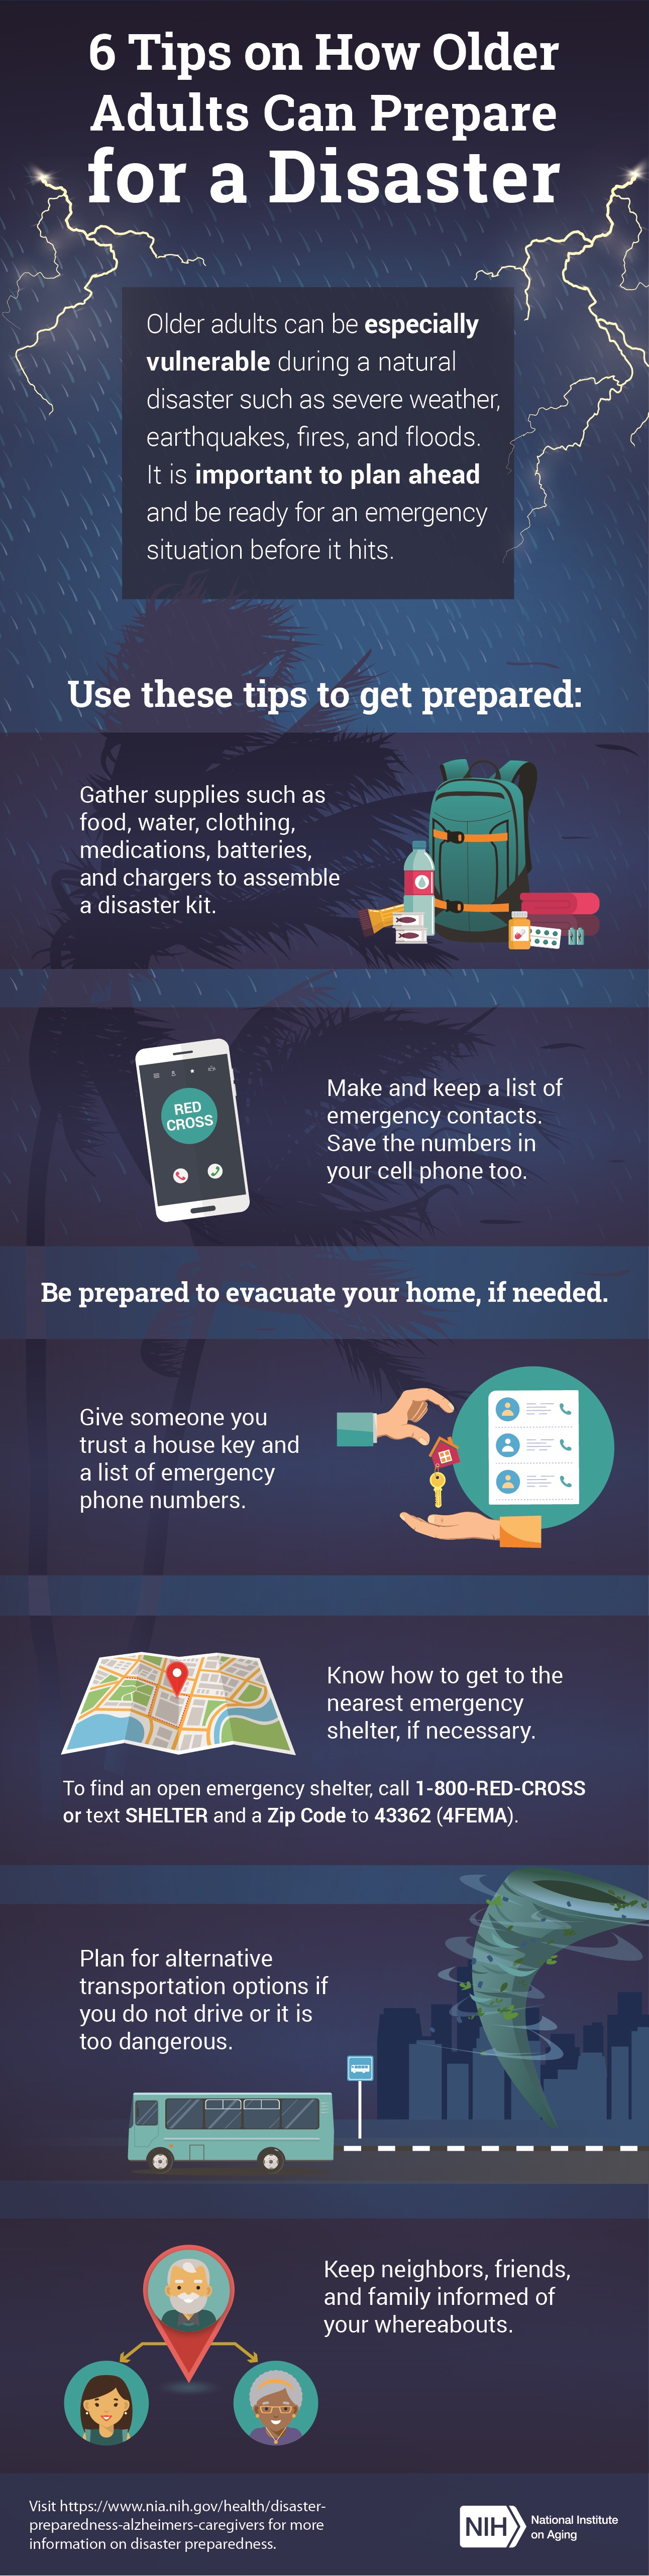 6 tips on how older adults can prepare for a disaster infographic. full transcript below.